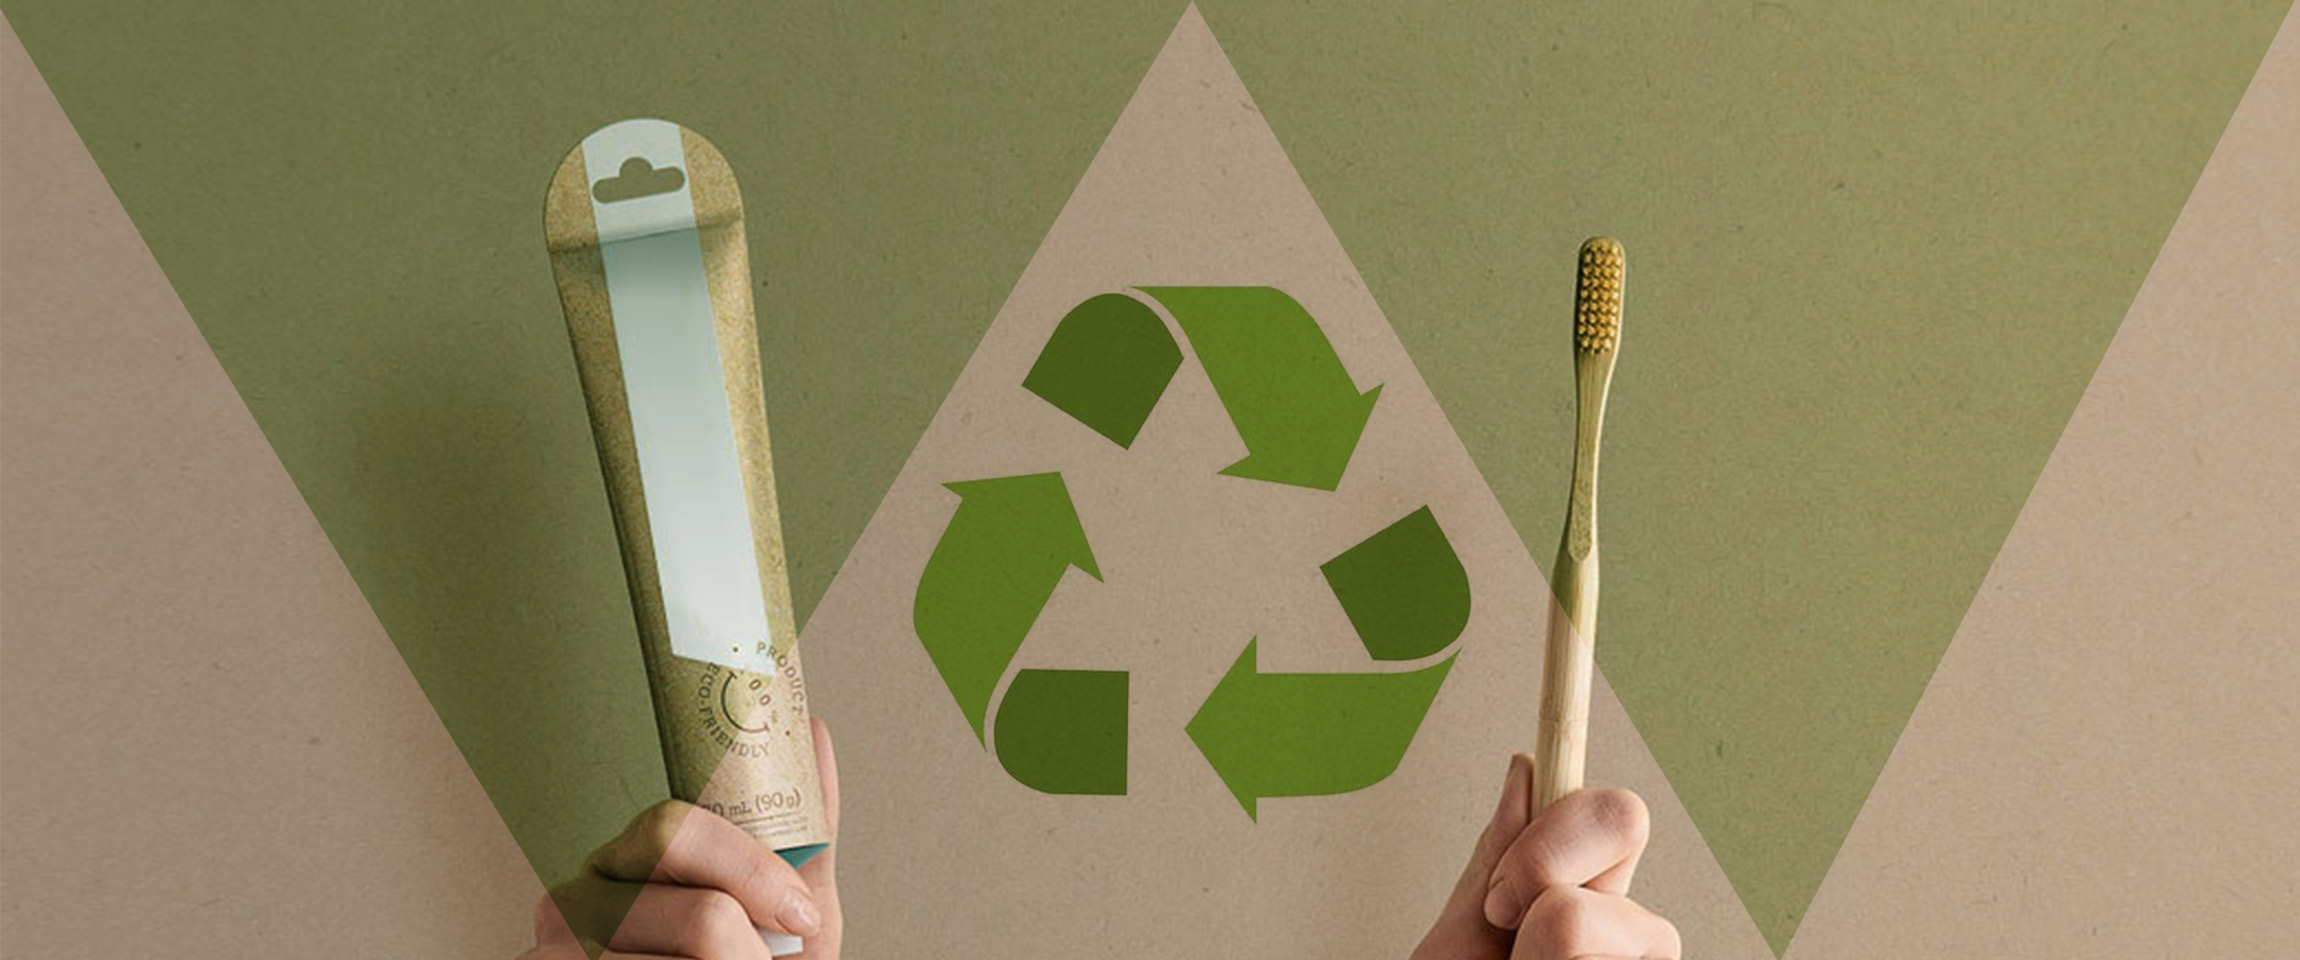 Want Brand Loyal? Then Go for Greener Packaging